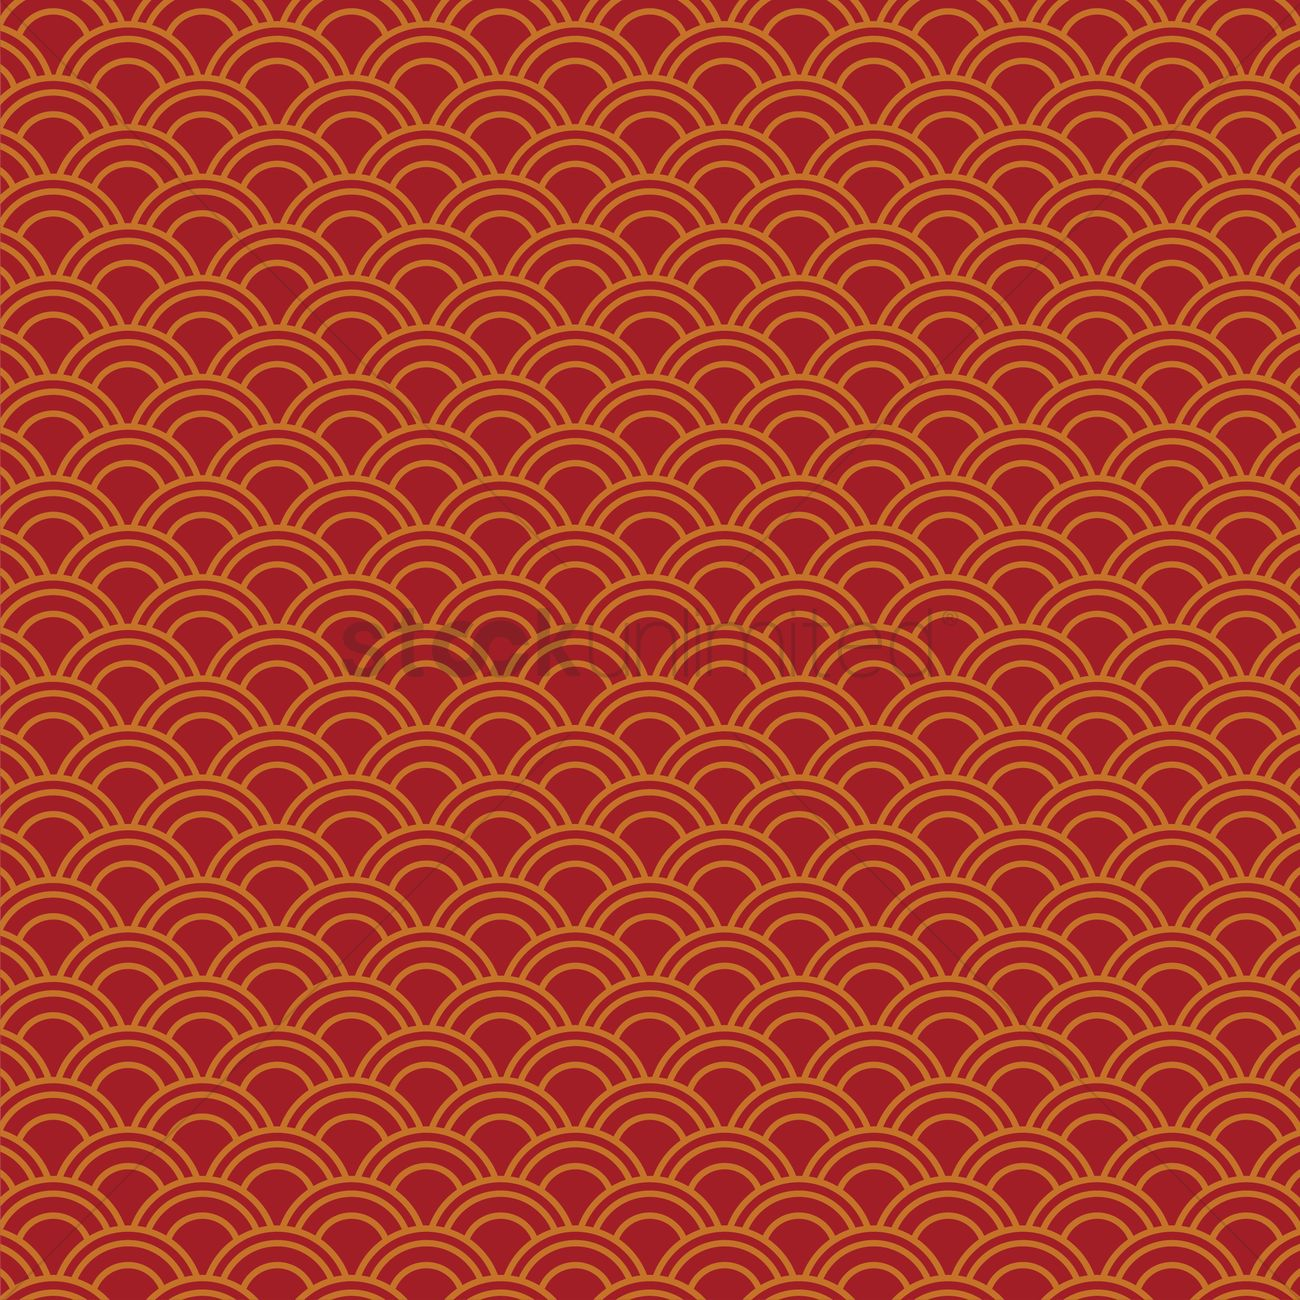 Chinese pattern background Vector Image - 1577039 ...